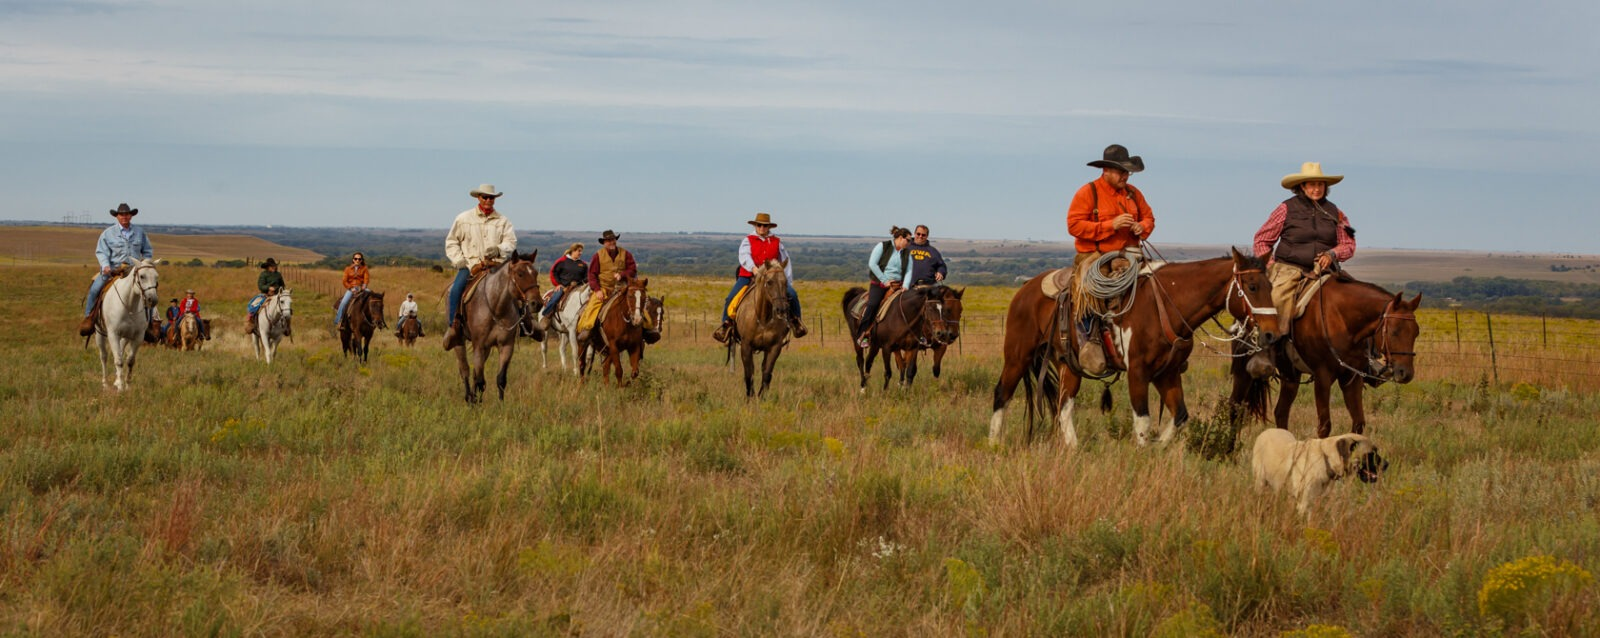 Horseback Riding Chase County Kansas Find Yourself Here